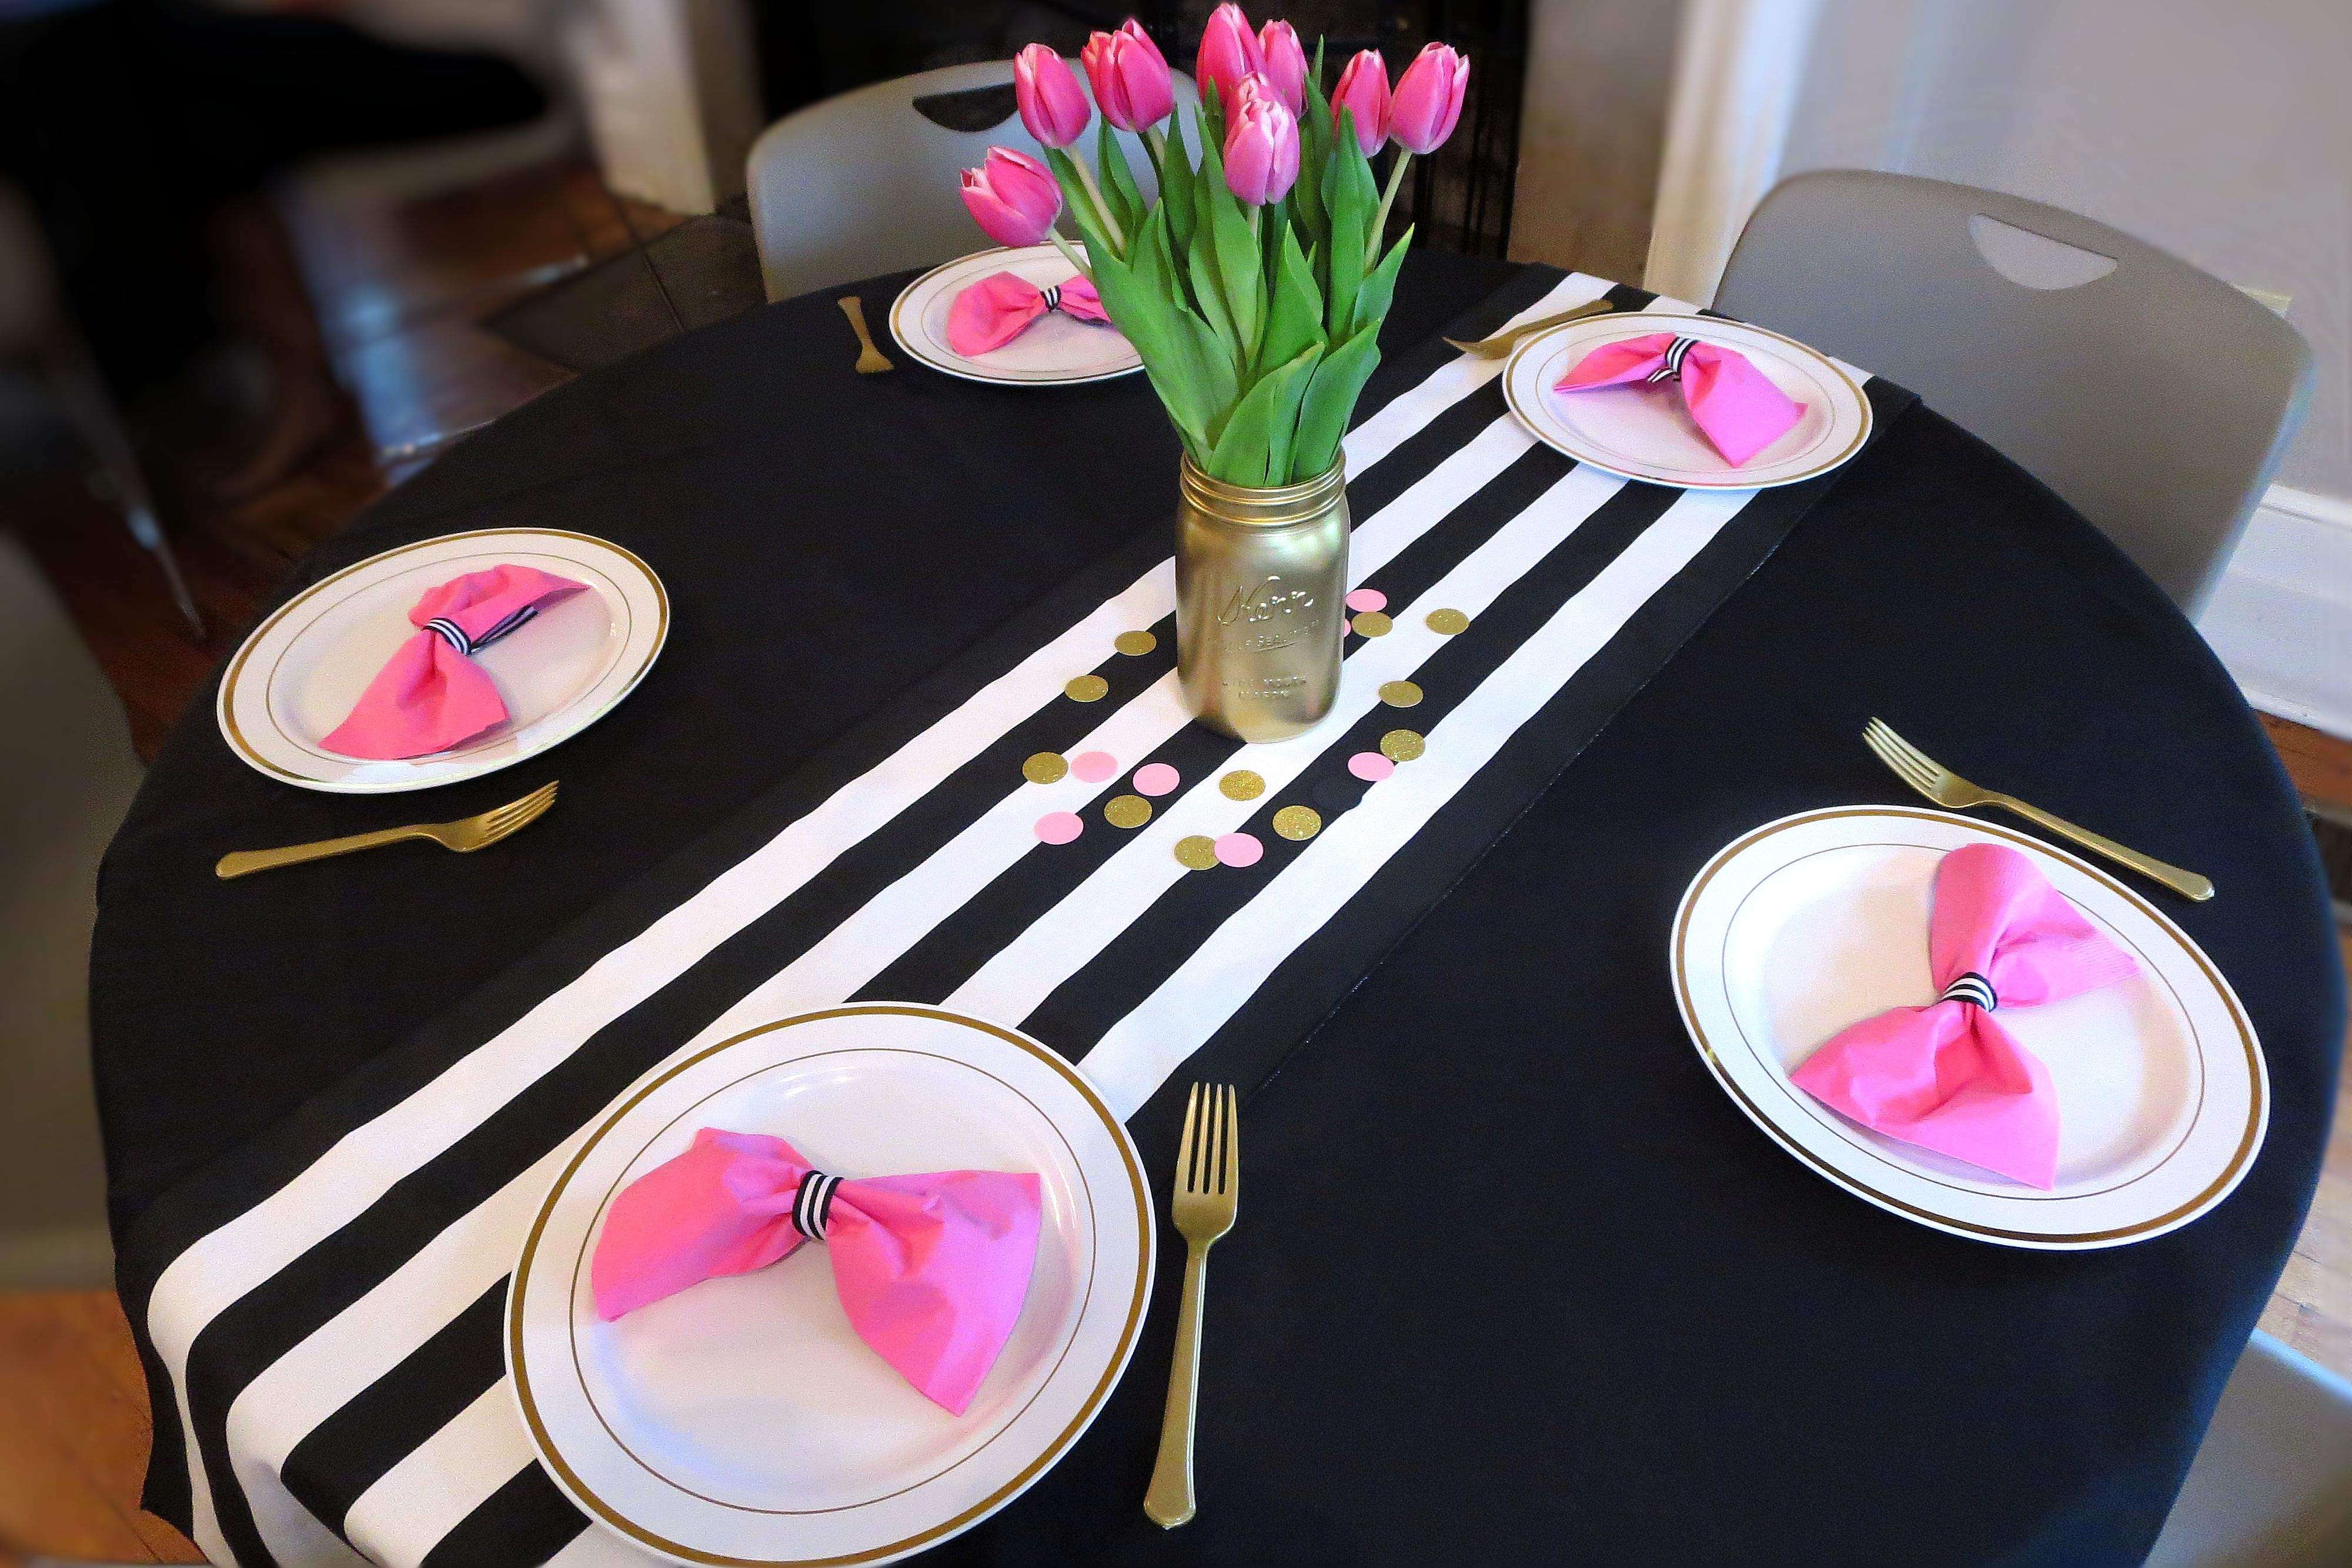 ... Baby Shower For A Girl, Baby Shower Ideas, Baby Shower Themes, Fun  Themes For A Girl Baby Shower, Kate Spade Baby Shower, Kate Spade Inspired,  ...